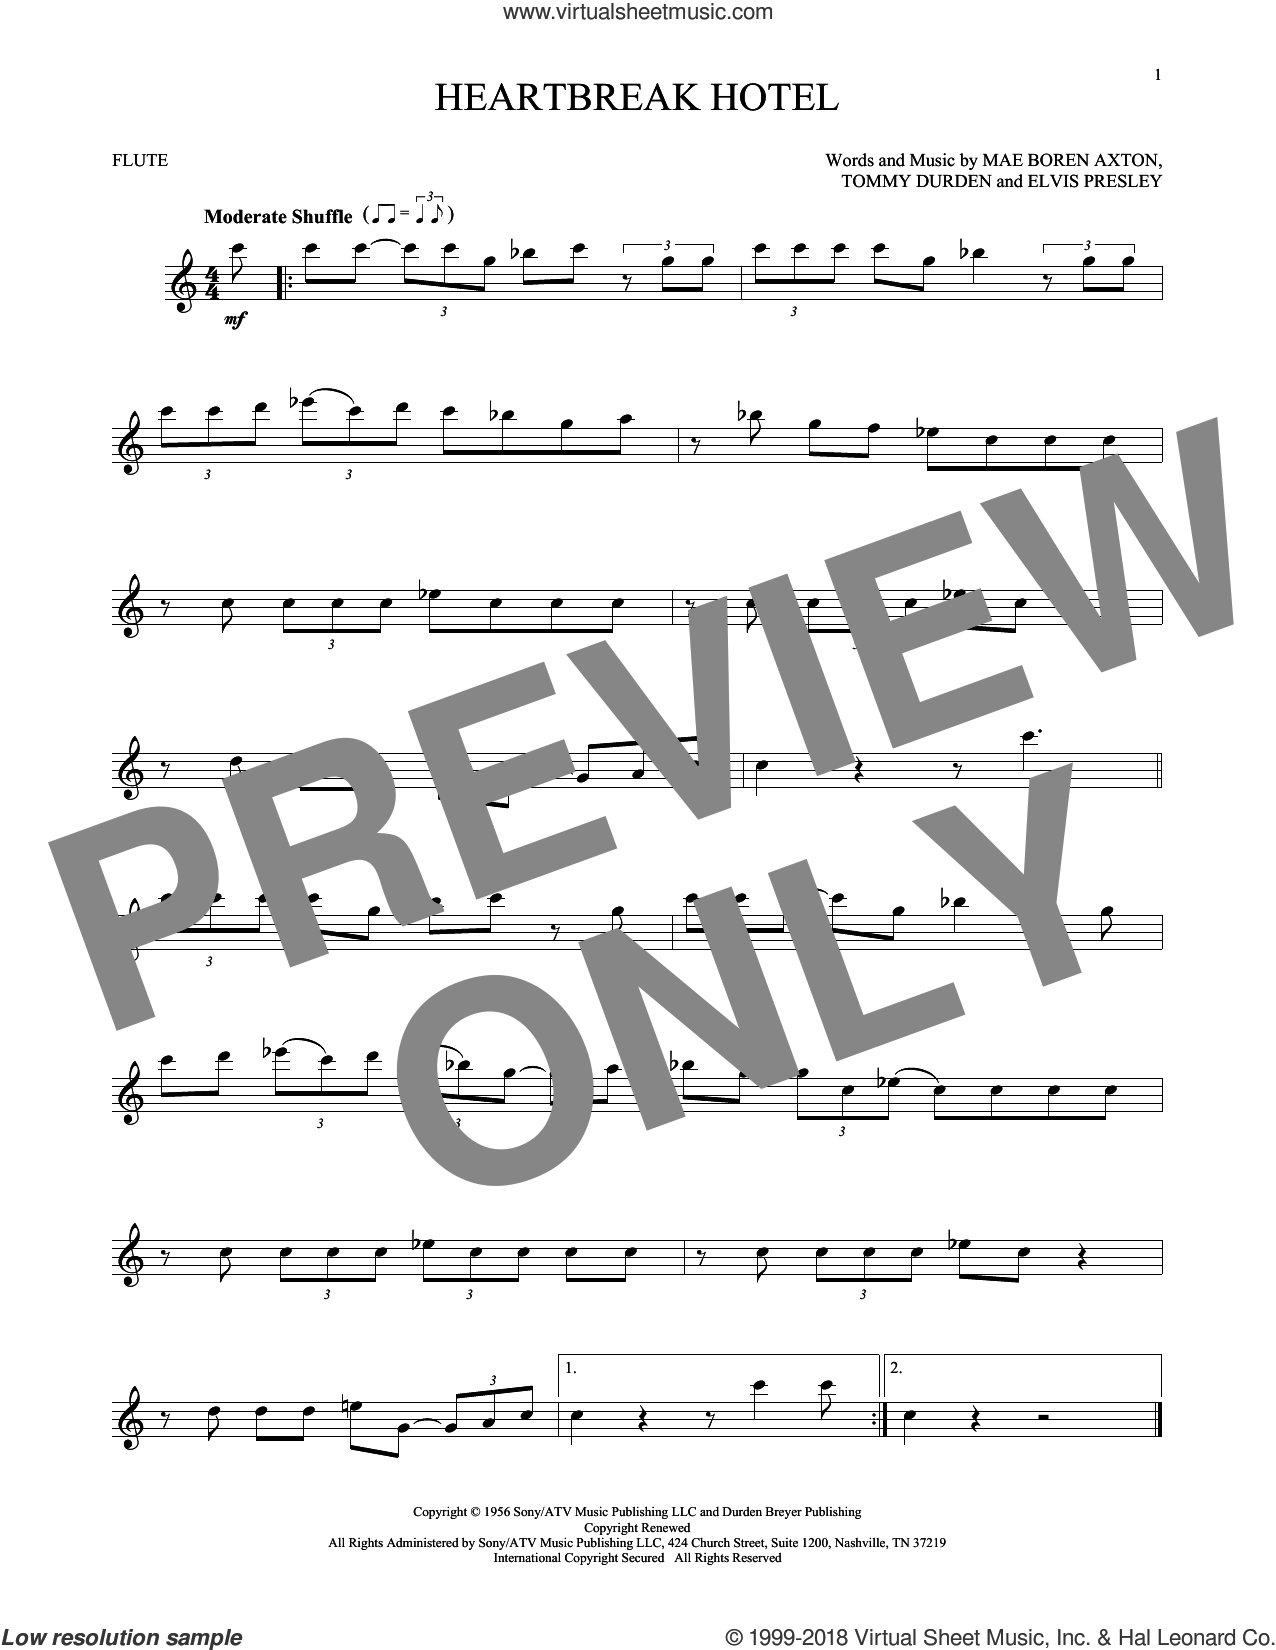 Heartbreak Hotel sheet music for flute solo by Elvis Presley, Mae Boren Axton and Tommy Durden, intermediate skill level